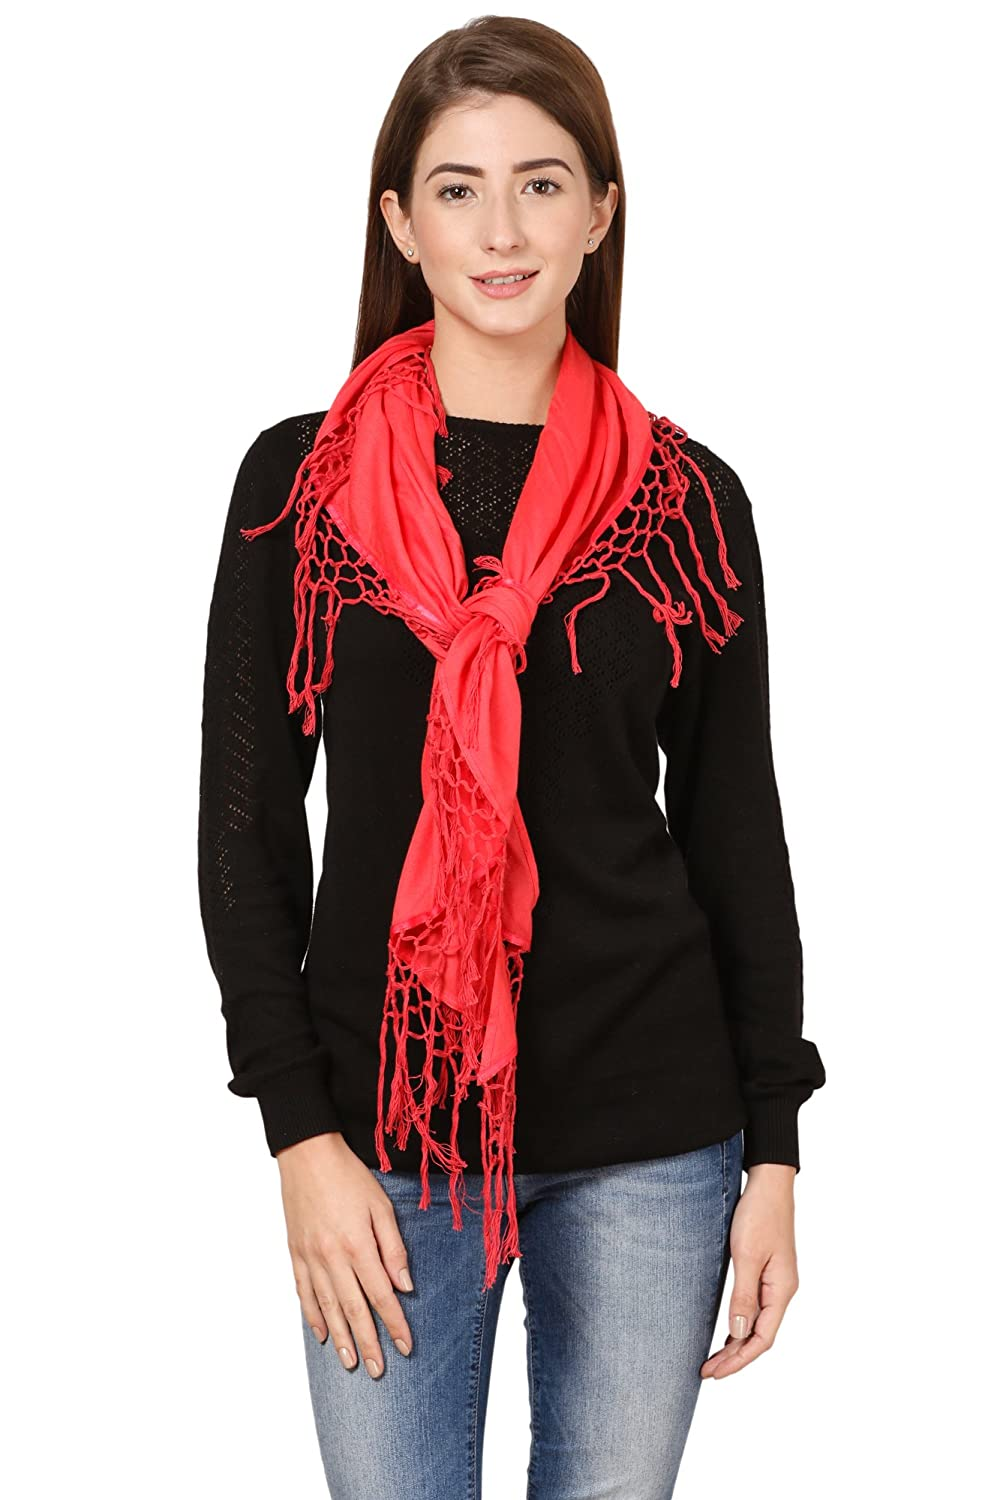 Cafsew Colours Womens Stole CG-10-RM,Coral,Viscose